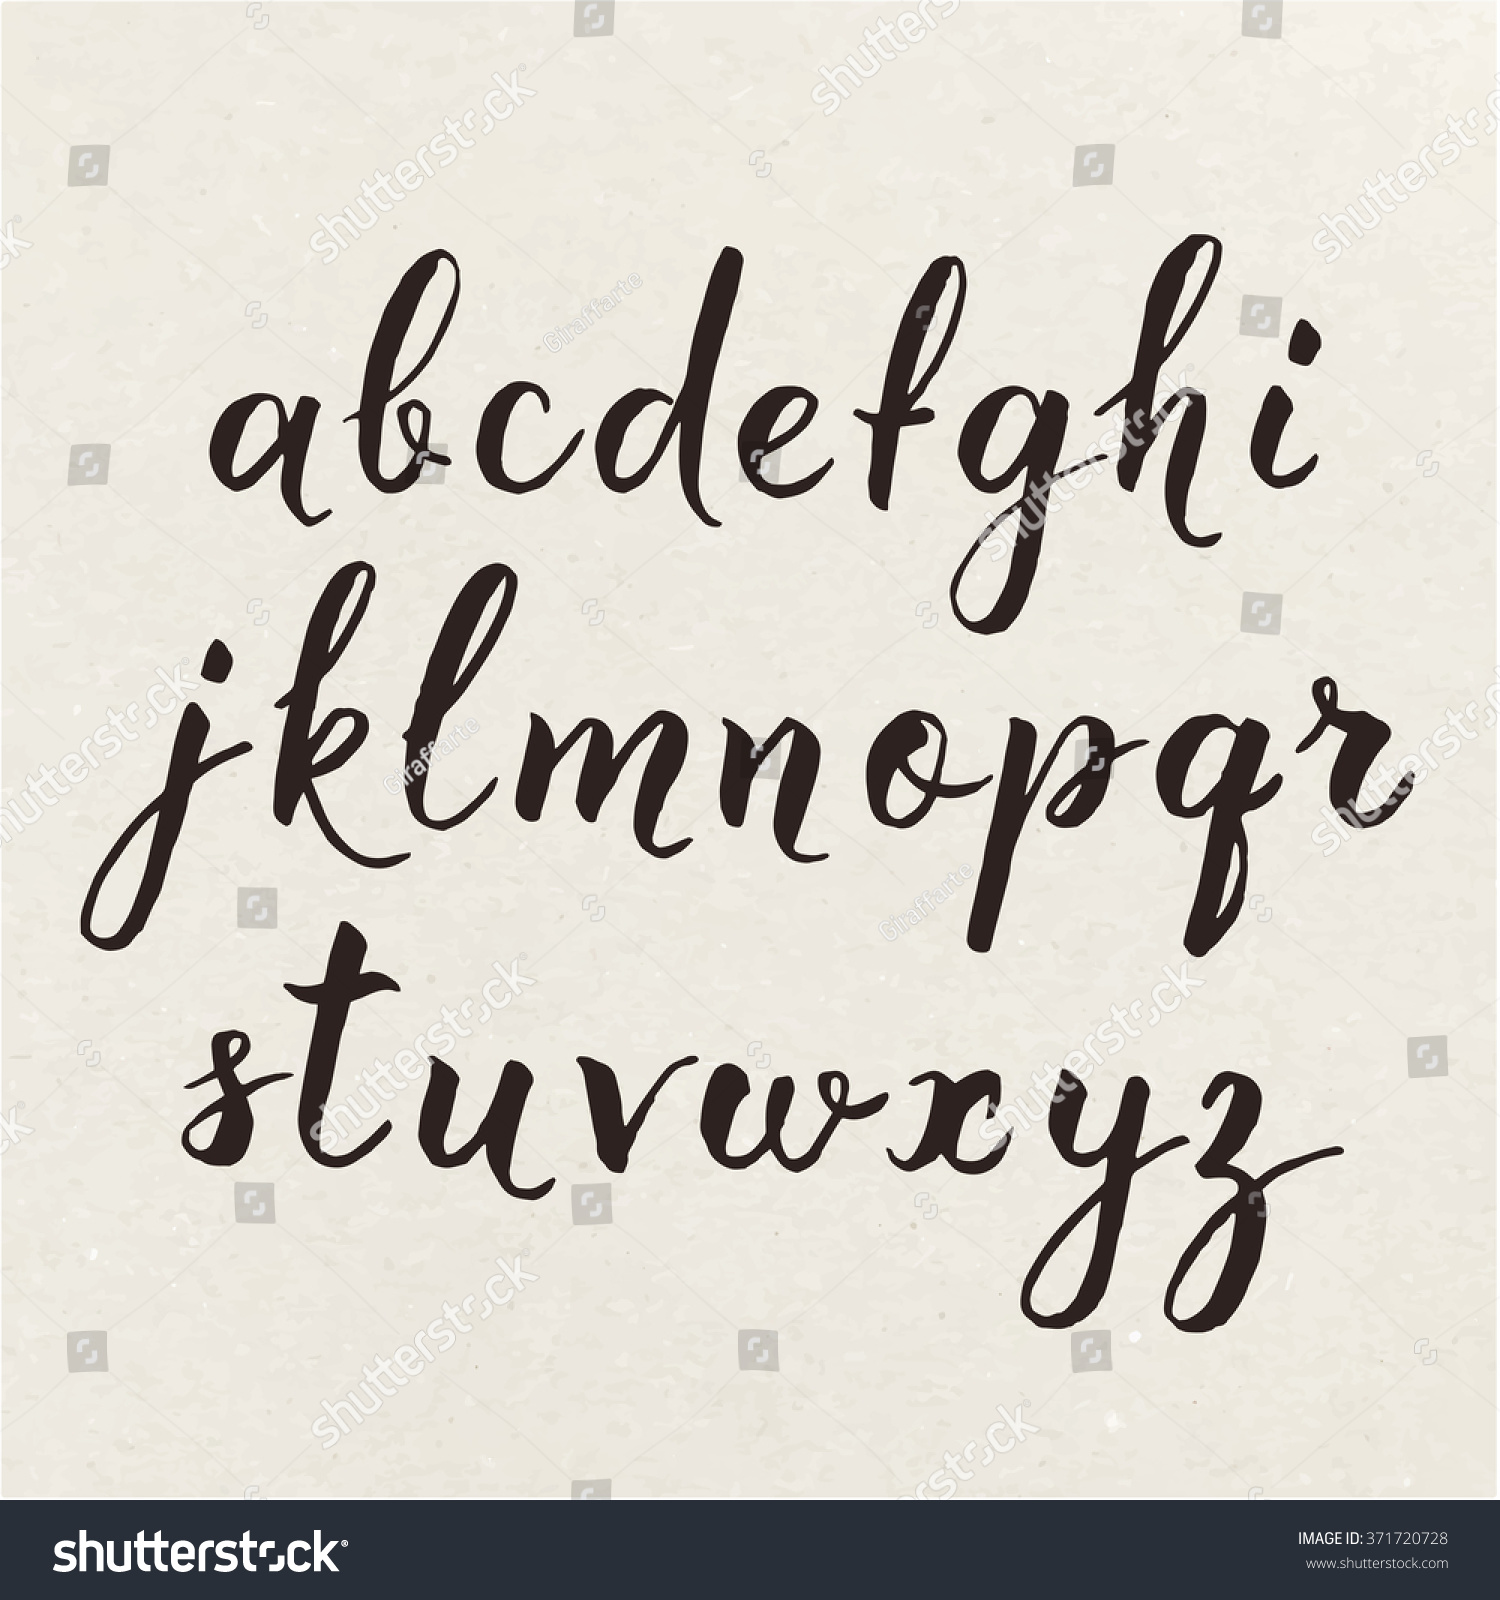 Hand written calligraphic alphabet cool calligraphic stock Cool caligraphy fonts